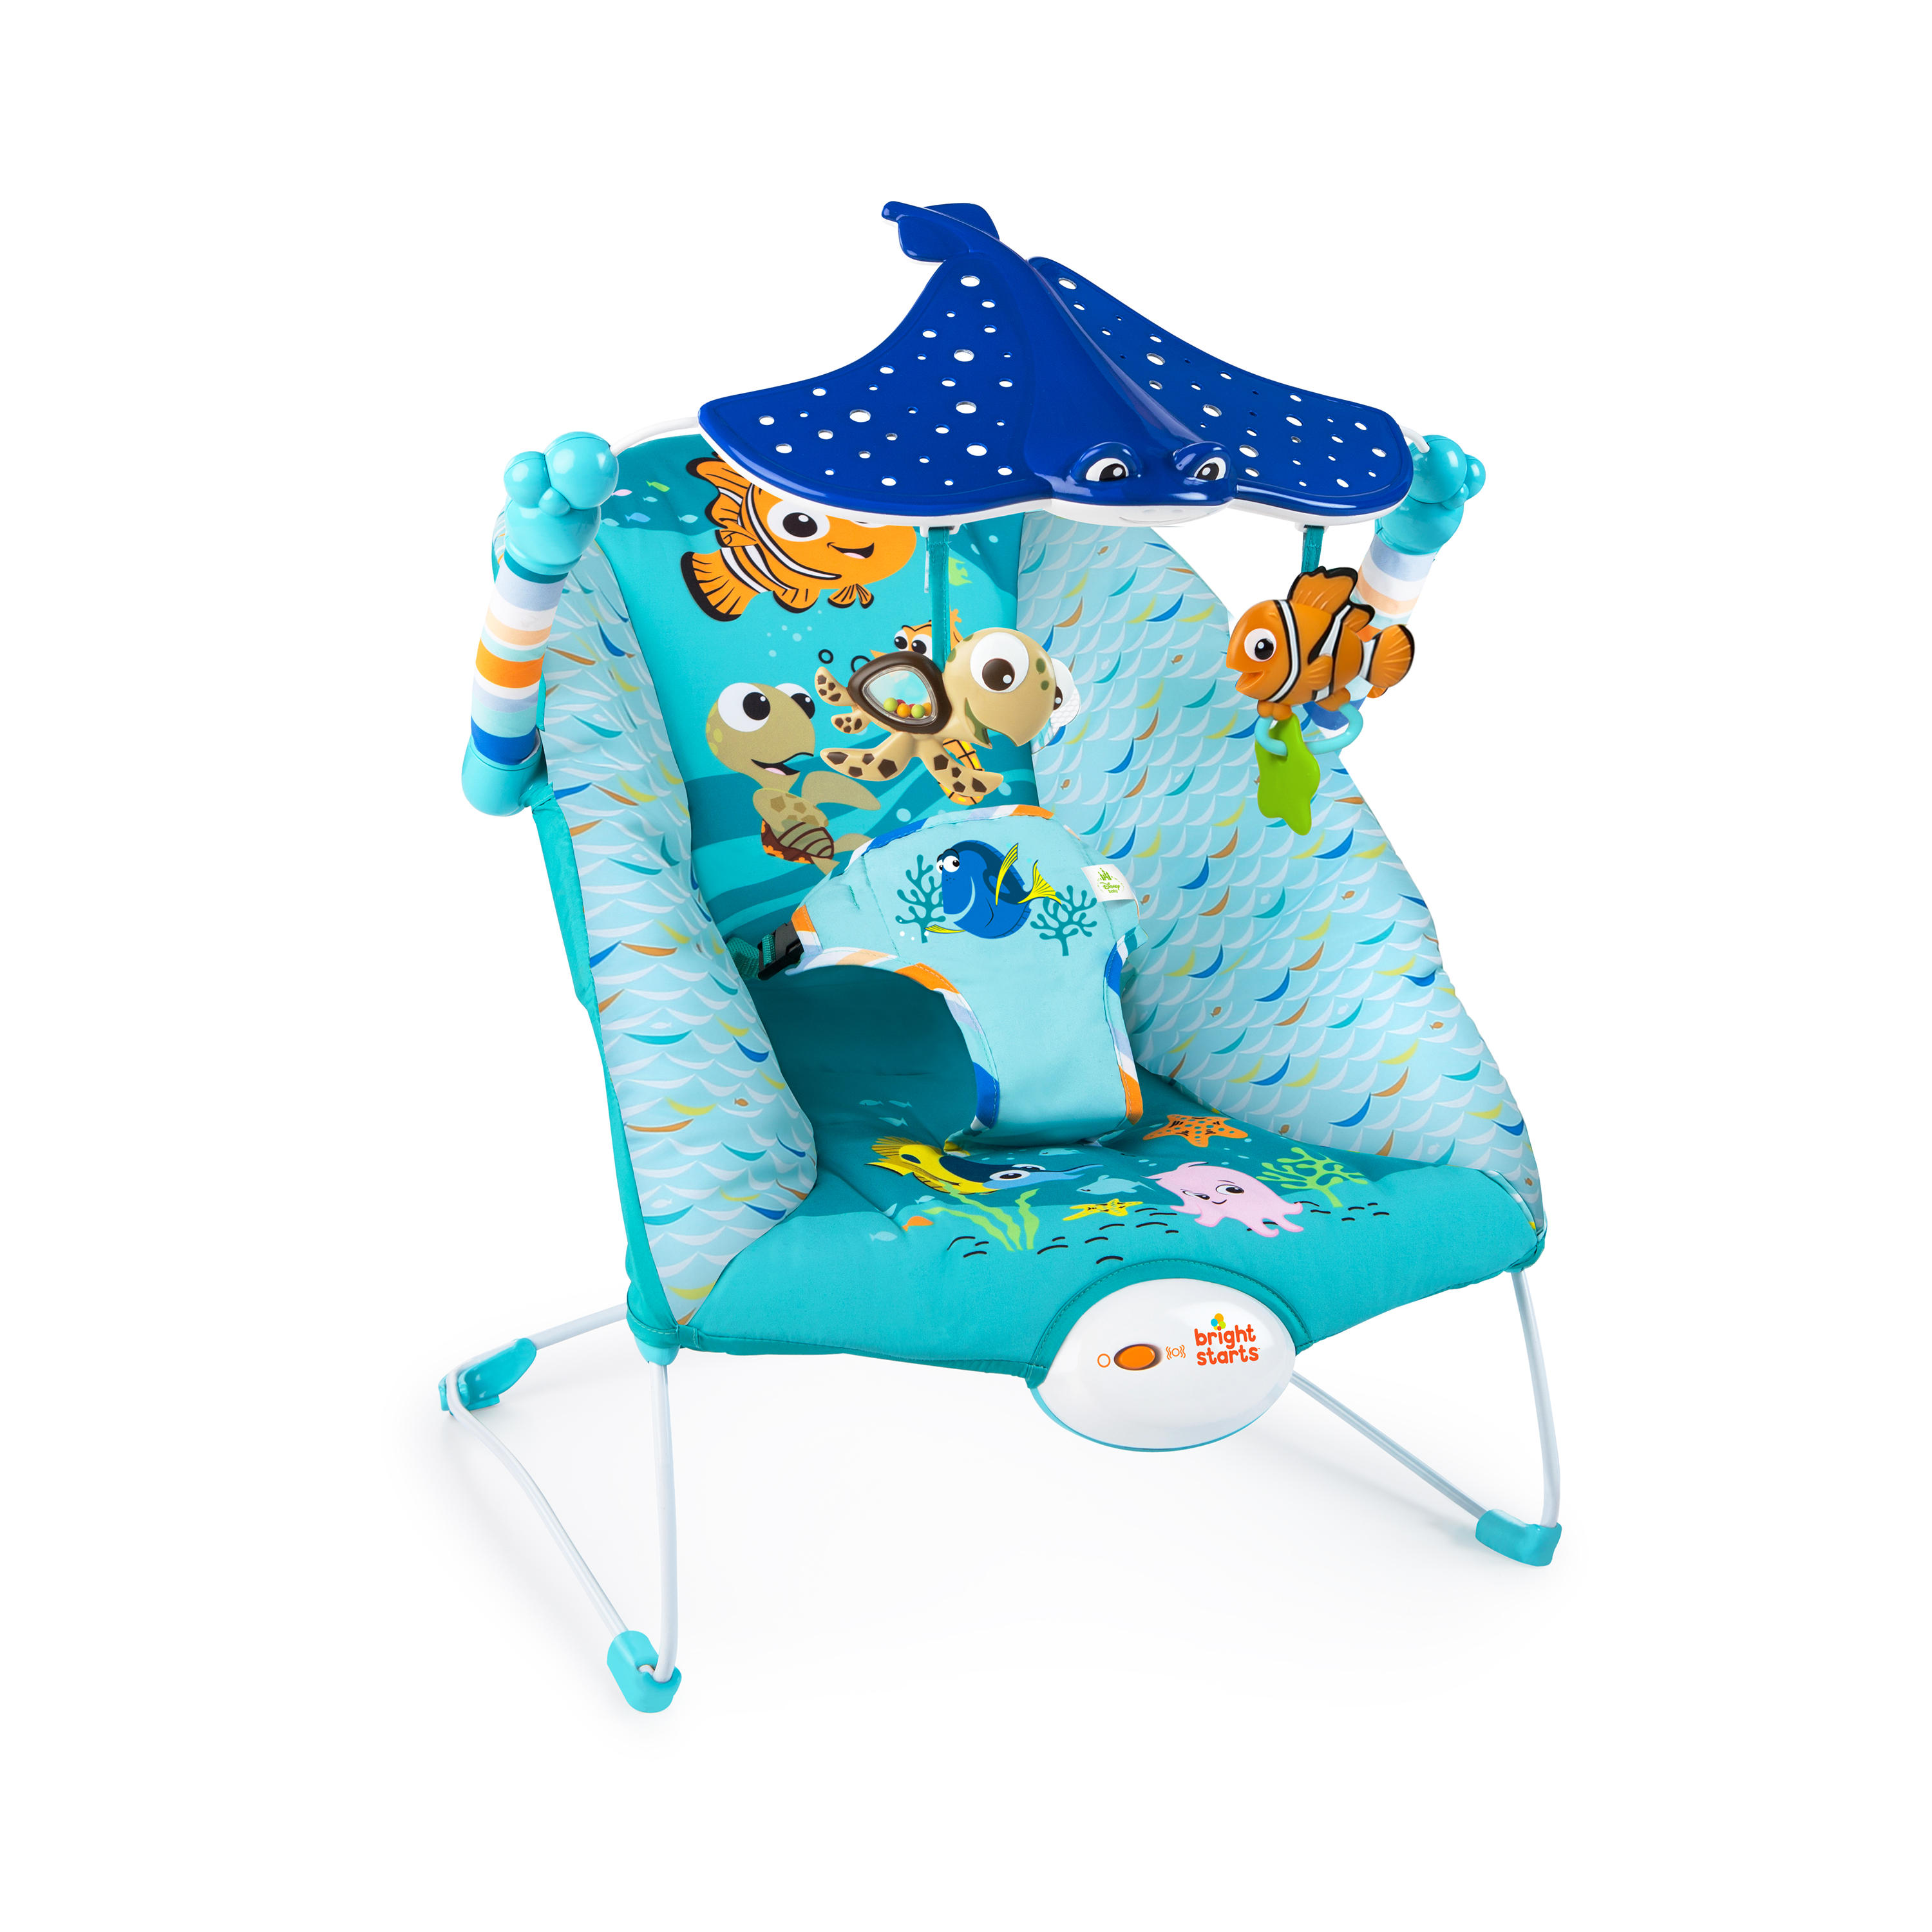 FINDING NEMO See & Swim Bouncer